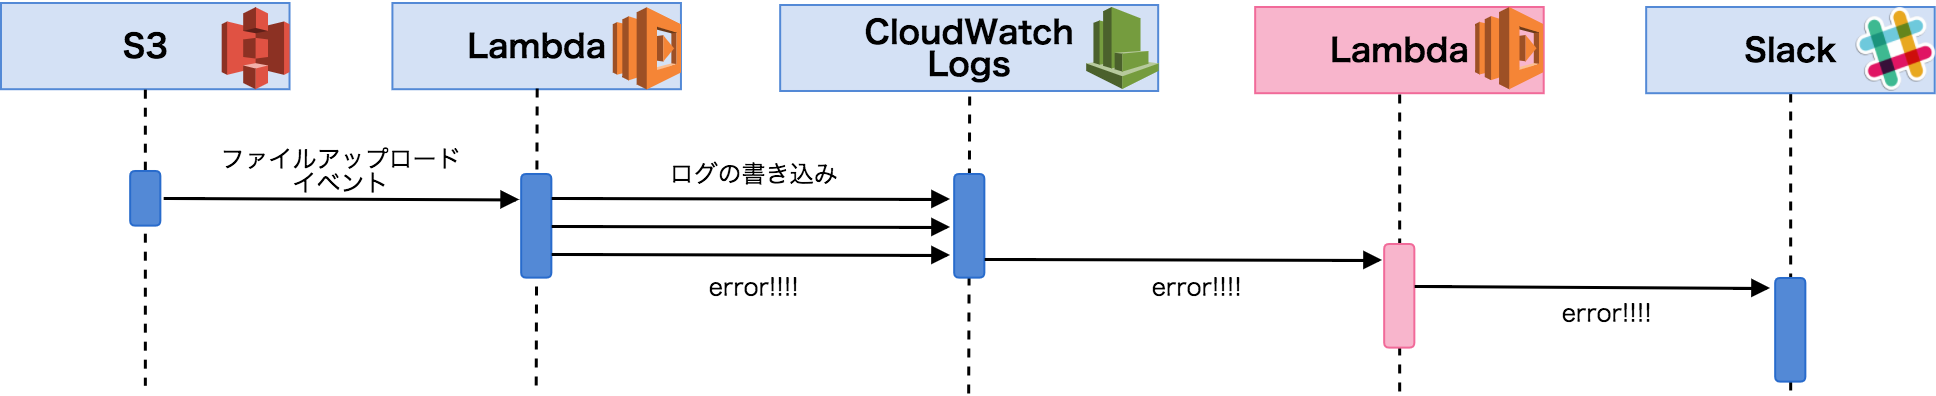 cloudwatchlogs.png